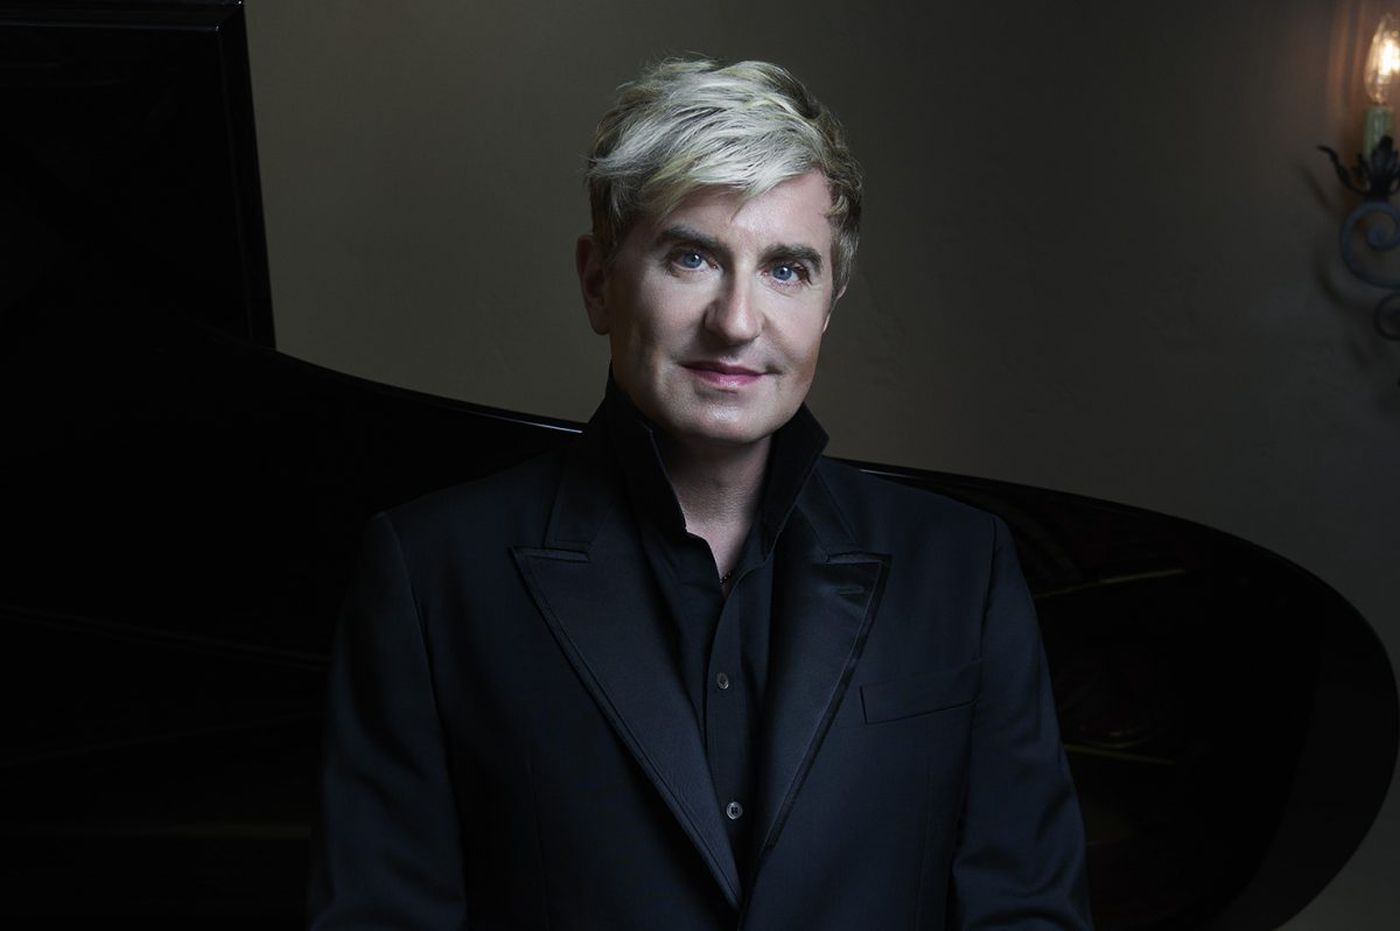 Philadelphia Orchestra tour soloist Jean-Yves Thibaudet has a side gig: Perhaps you've heard him at the movies?